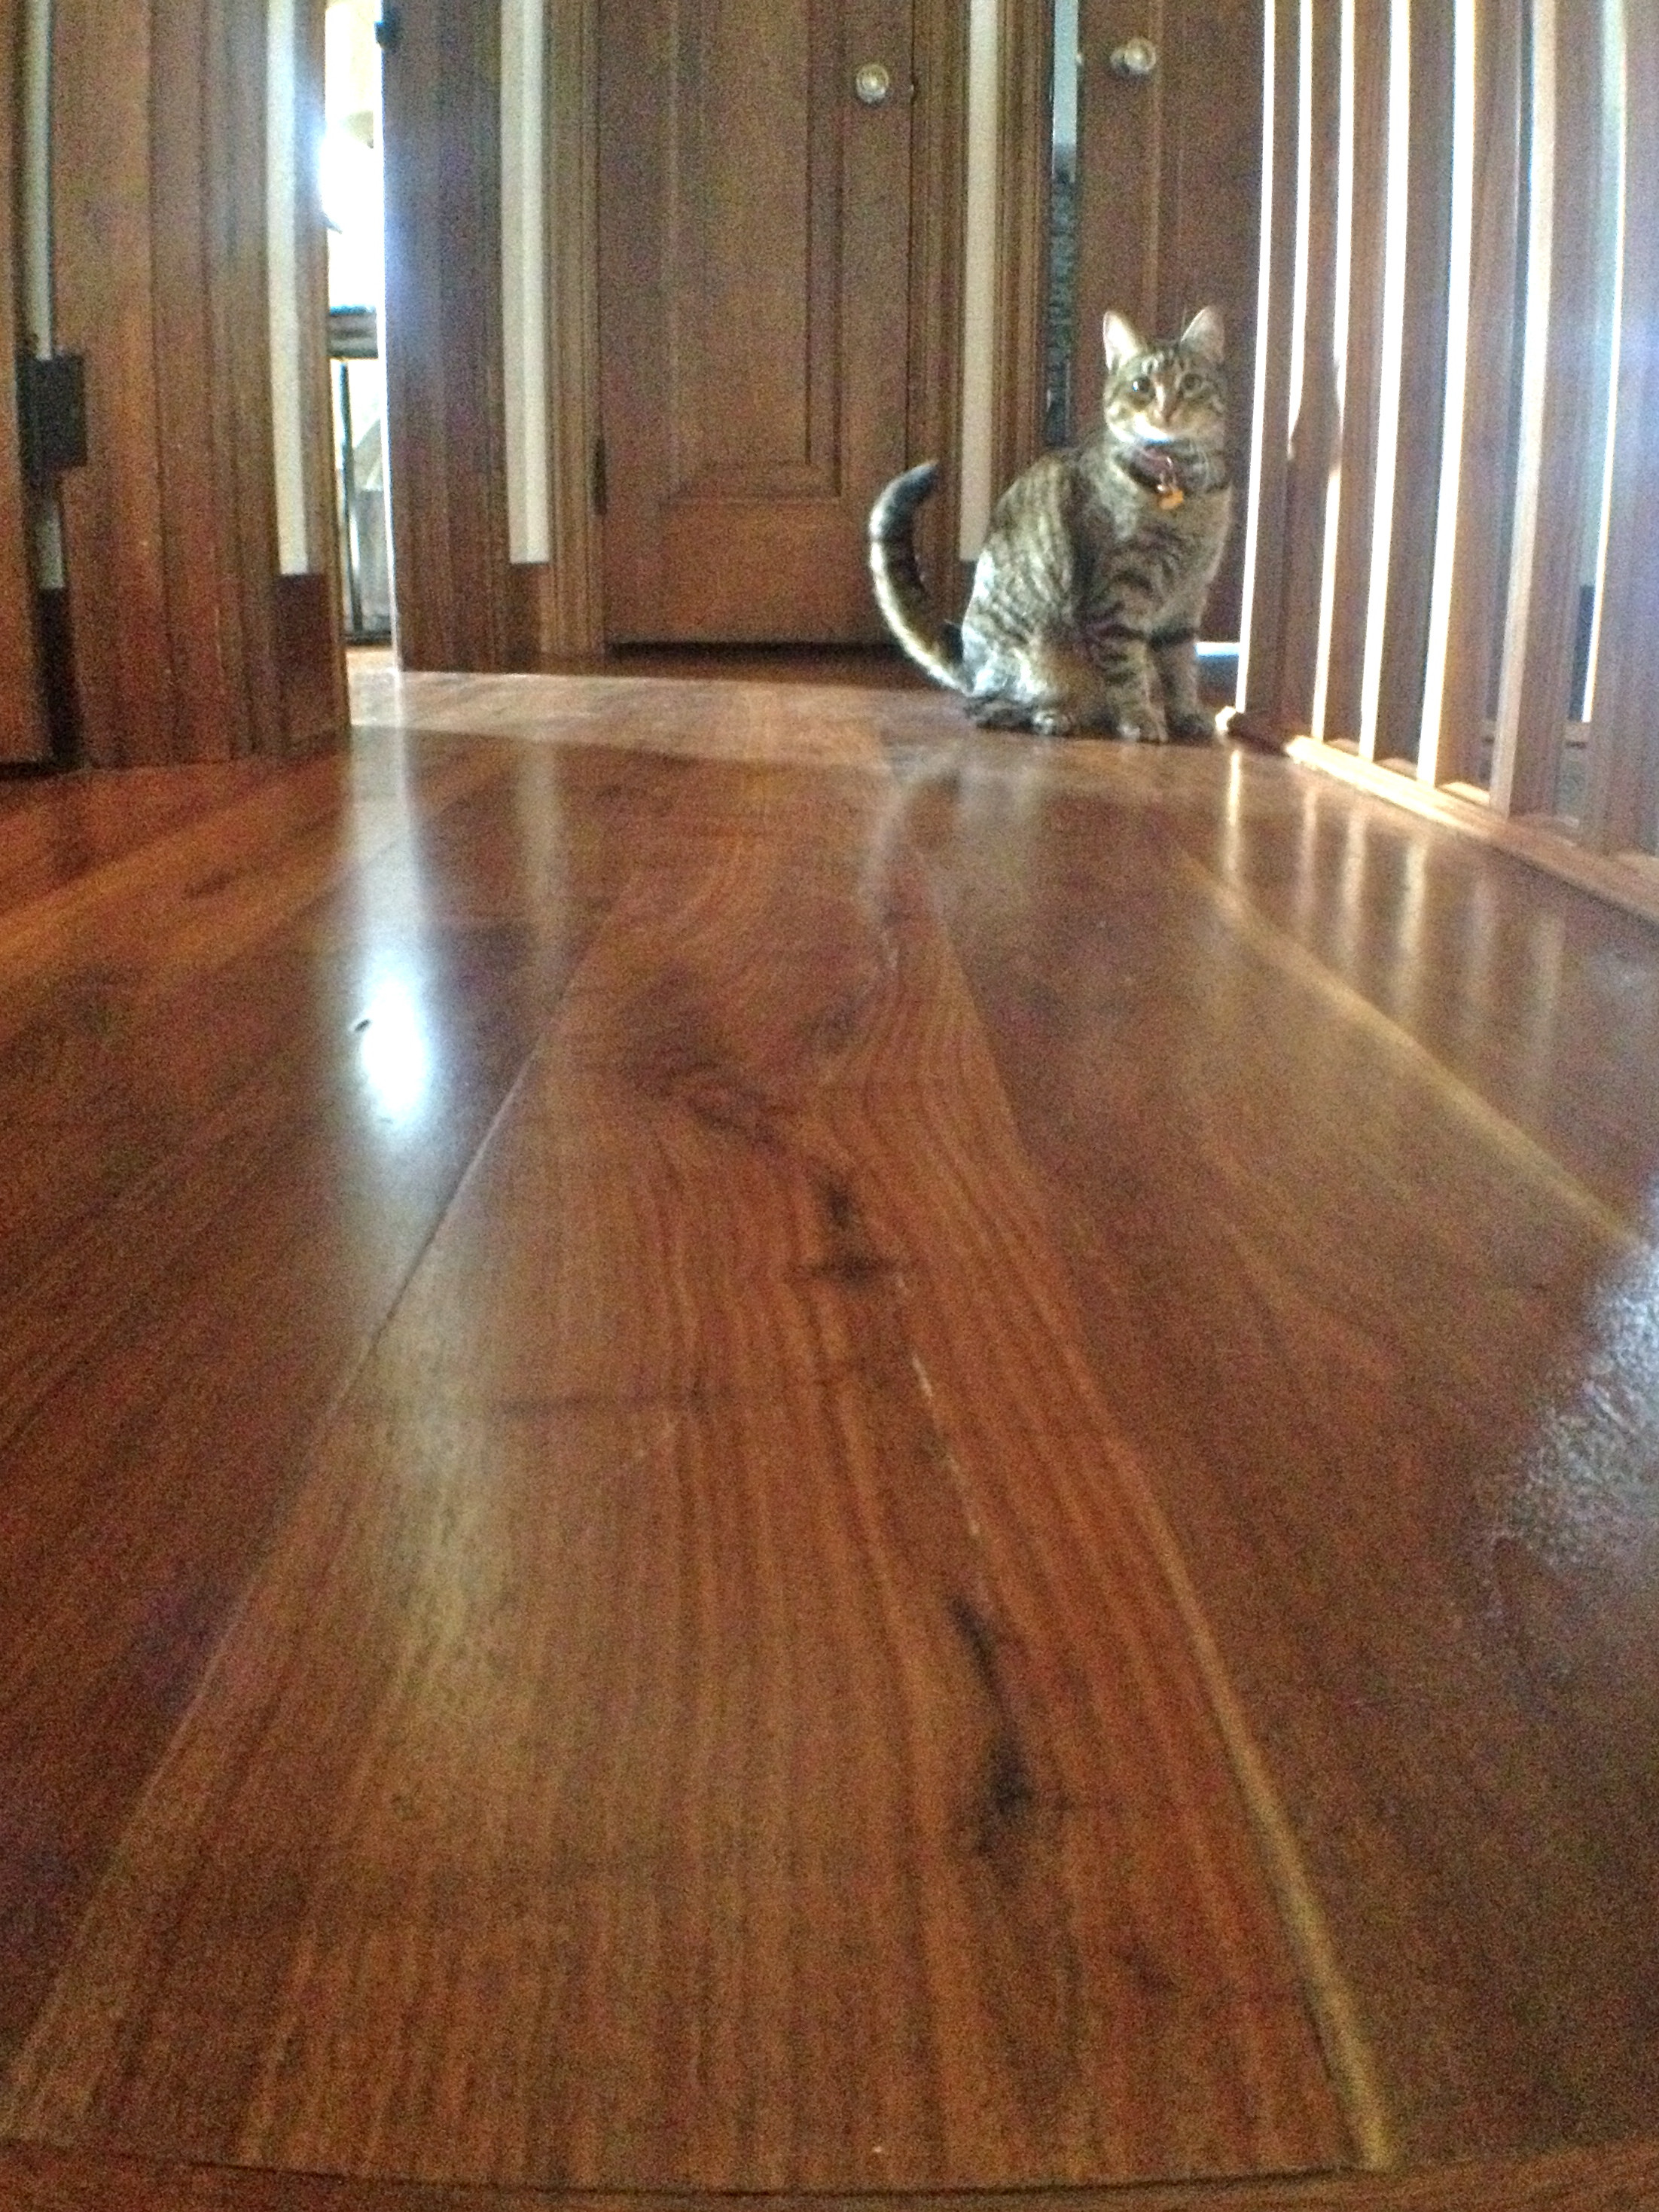 prefinished hardwood flooring prices of hardwood flooring birmingham al unfinished hardwood floor cleaner intended for hardwood flooring birmingham al unfinished hardwood floor cleaner